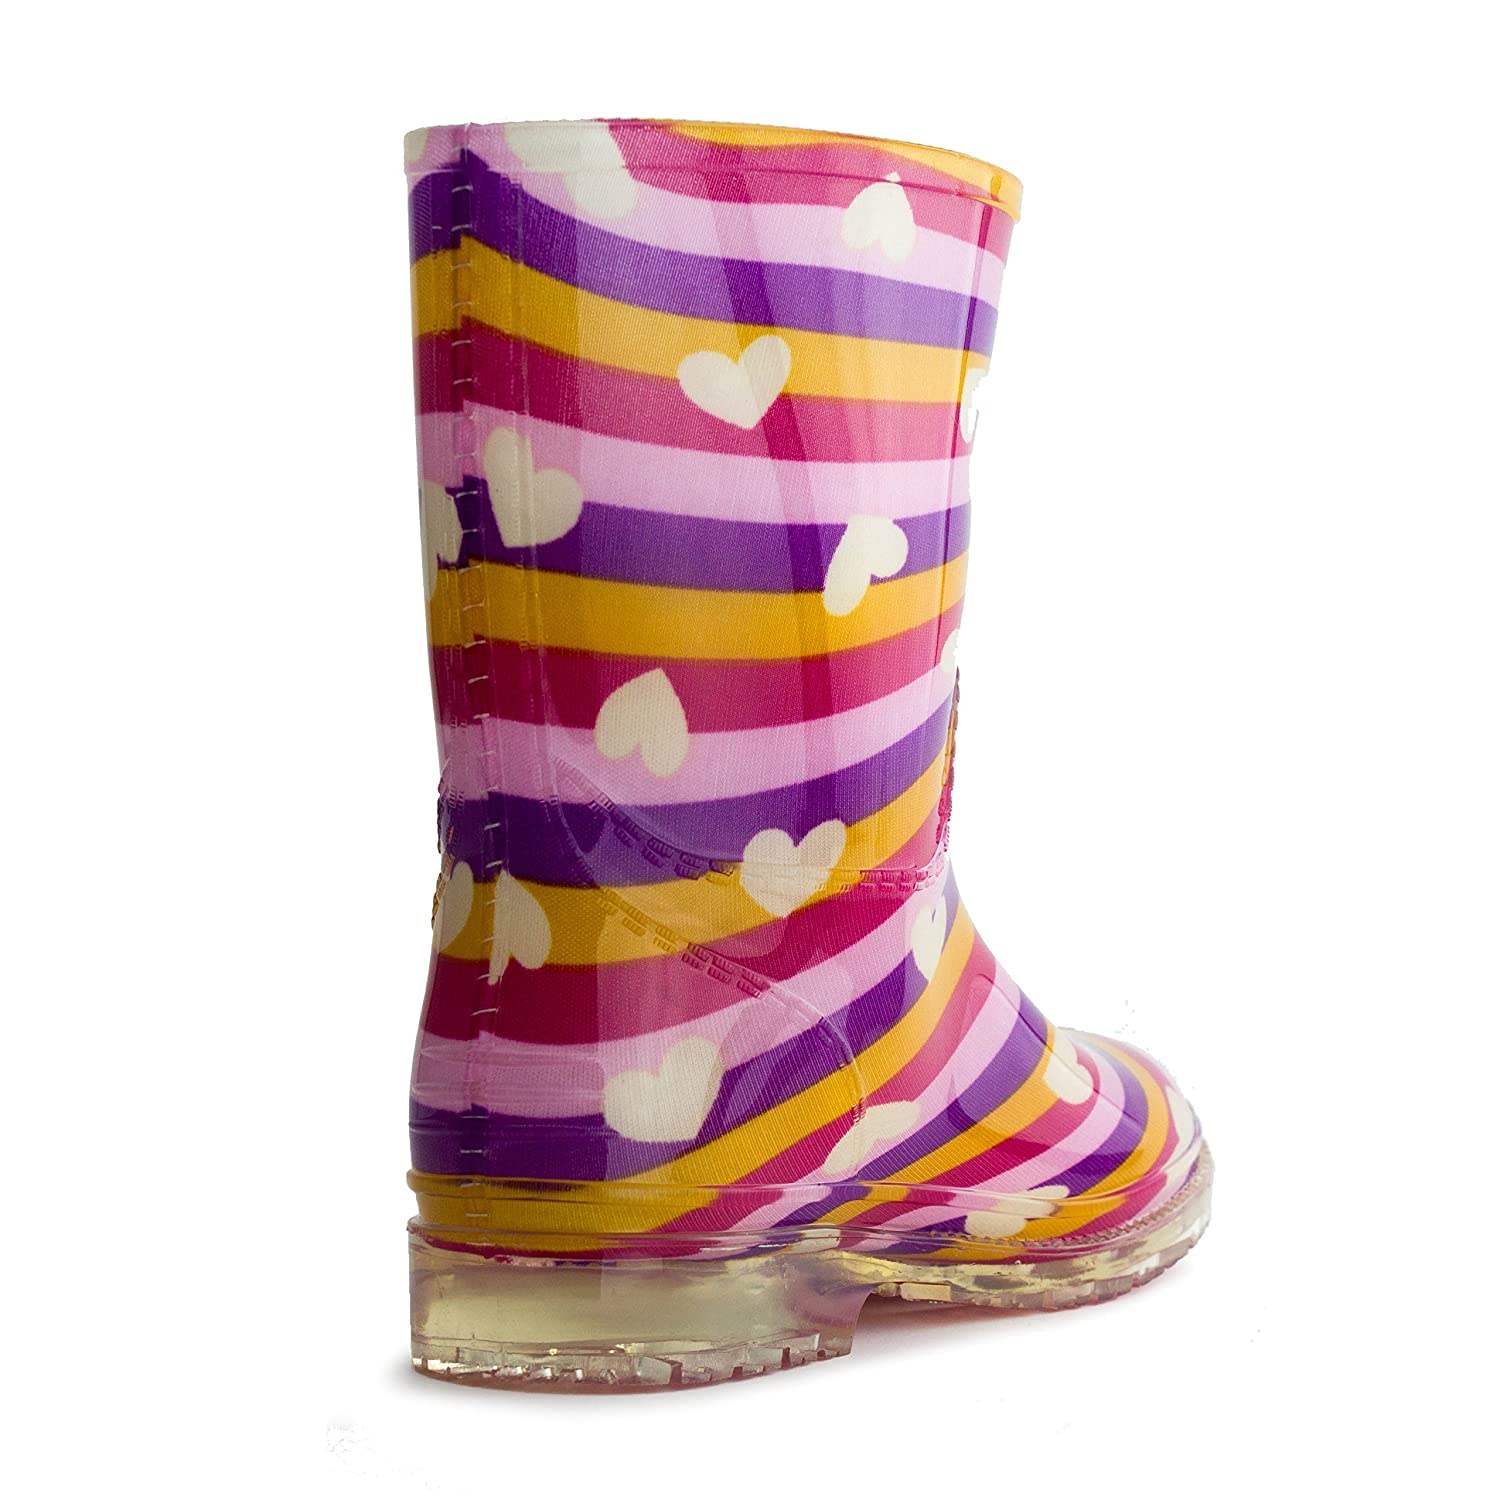 EASY Girls Fashion Rain Boots (Toddler/Little Kid): Amazon.ca: Shoes &  Handbags